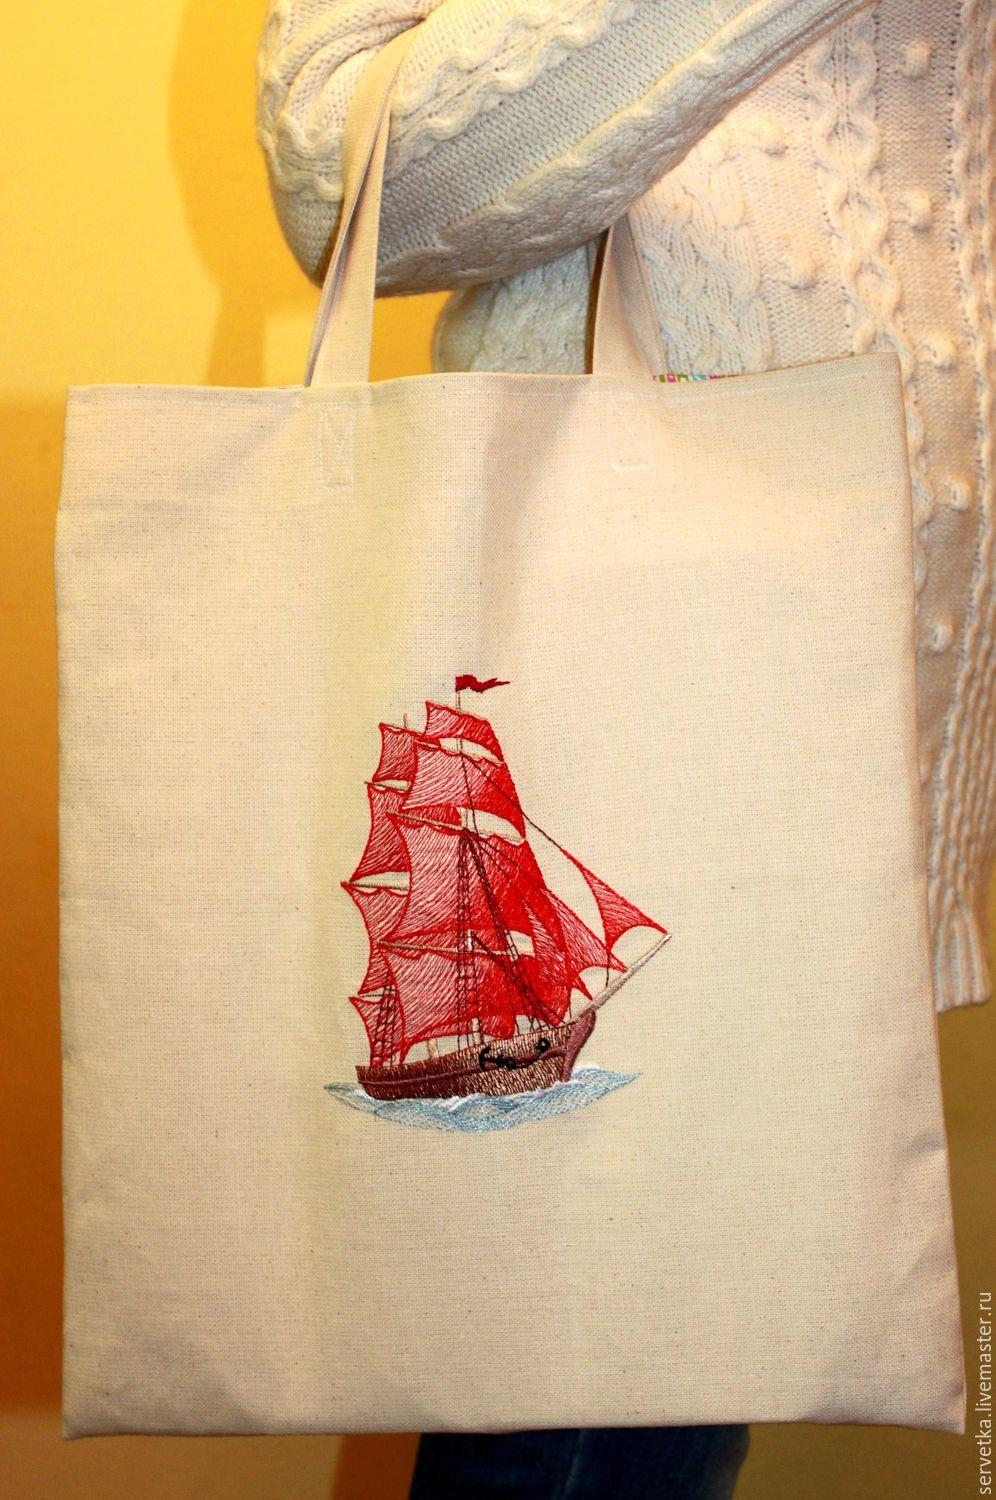 Embroidered bag with red sails ship free design